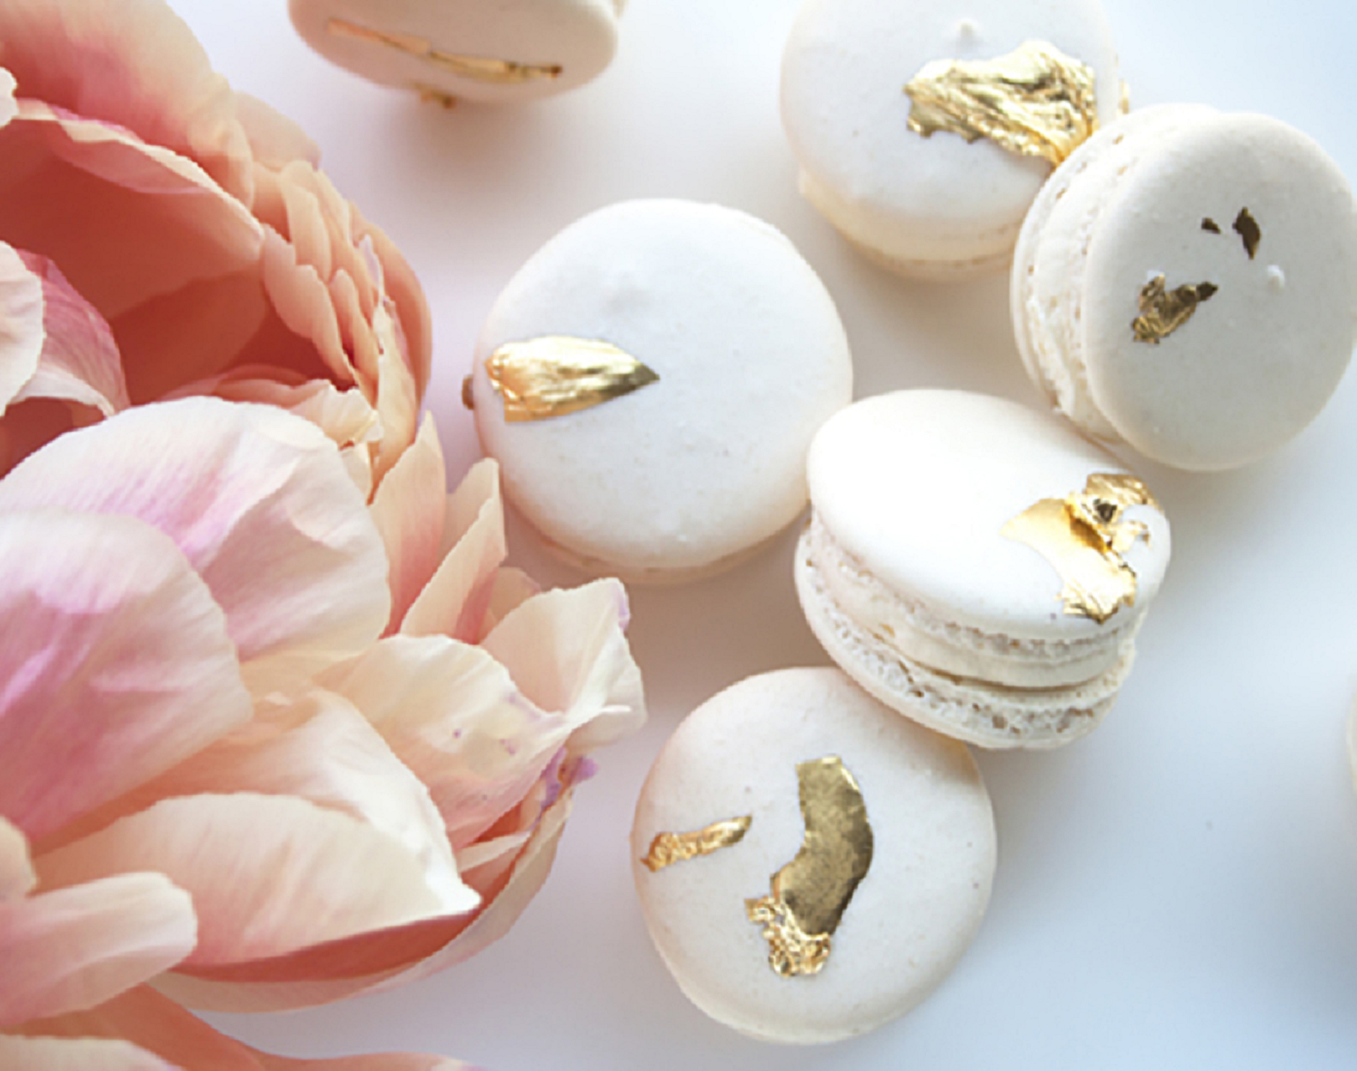 Bling wedding receptions Everyone Loves These Gold Flecked Macarons. Try Stacking Them For a Quirky Cake